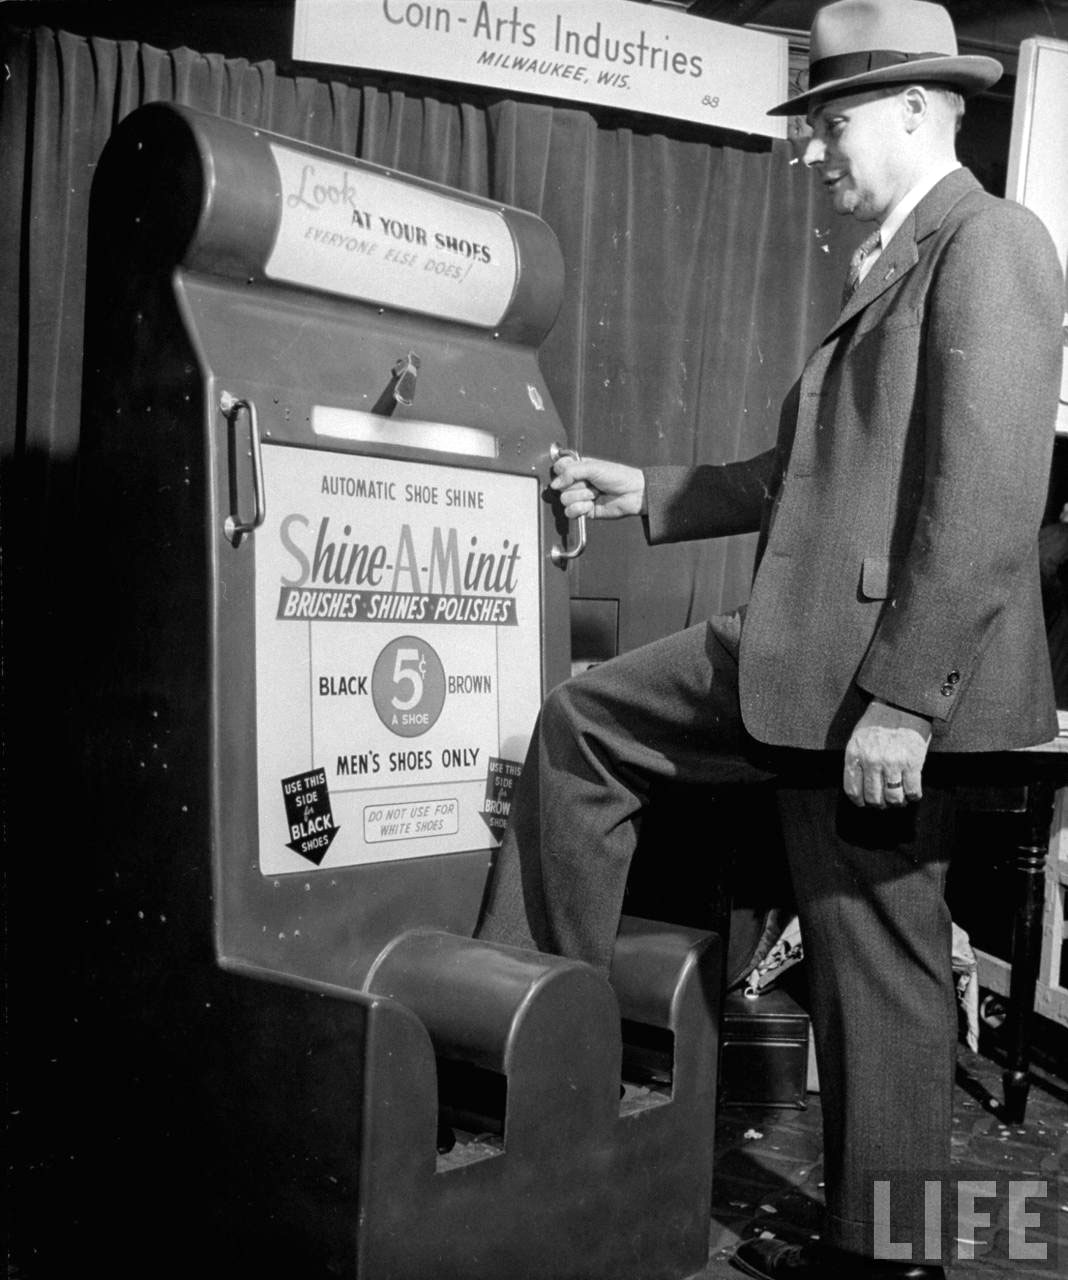 Photograph of a vintage coin-operated shoeshine machine, 1947 (Life magazine, Wallace Kirkland)